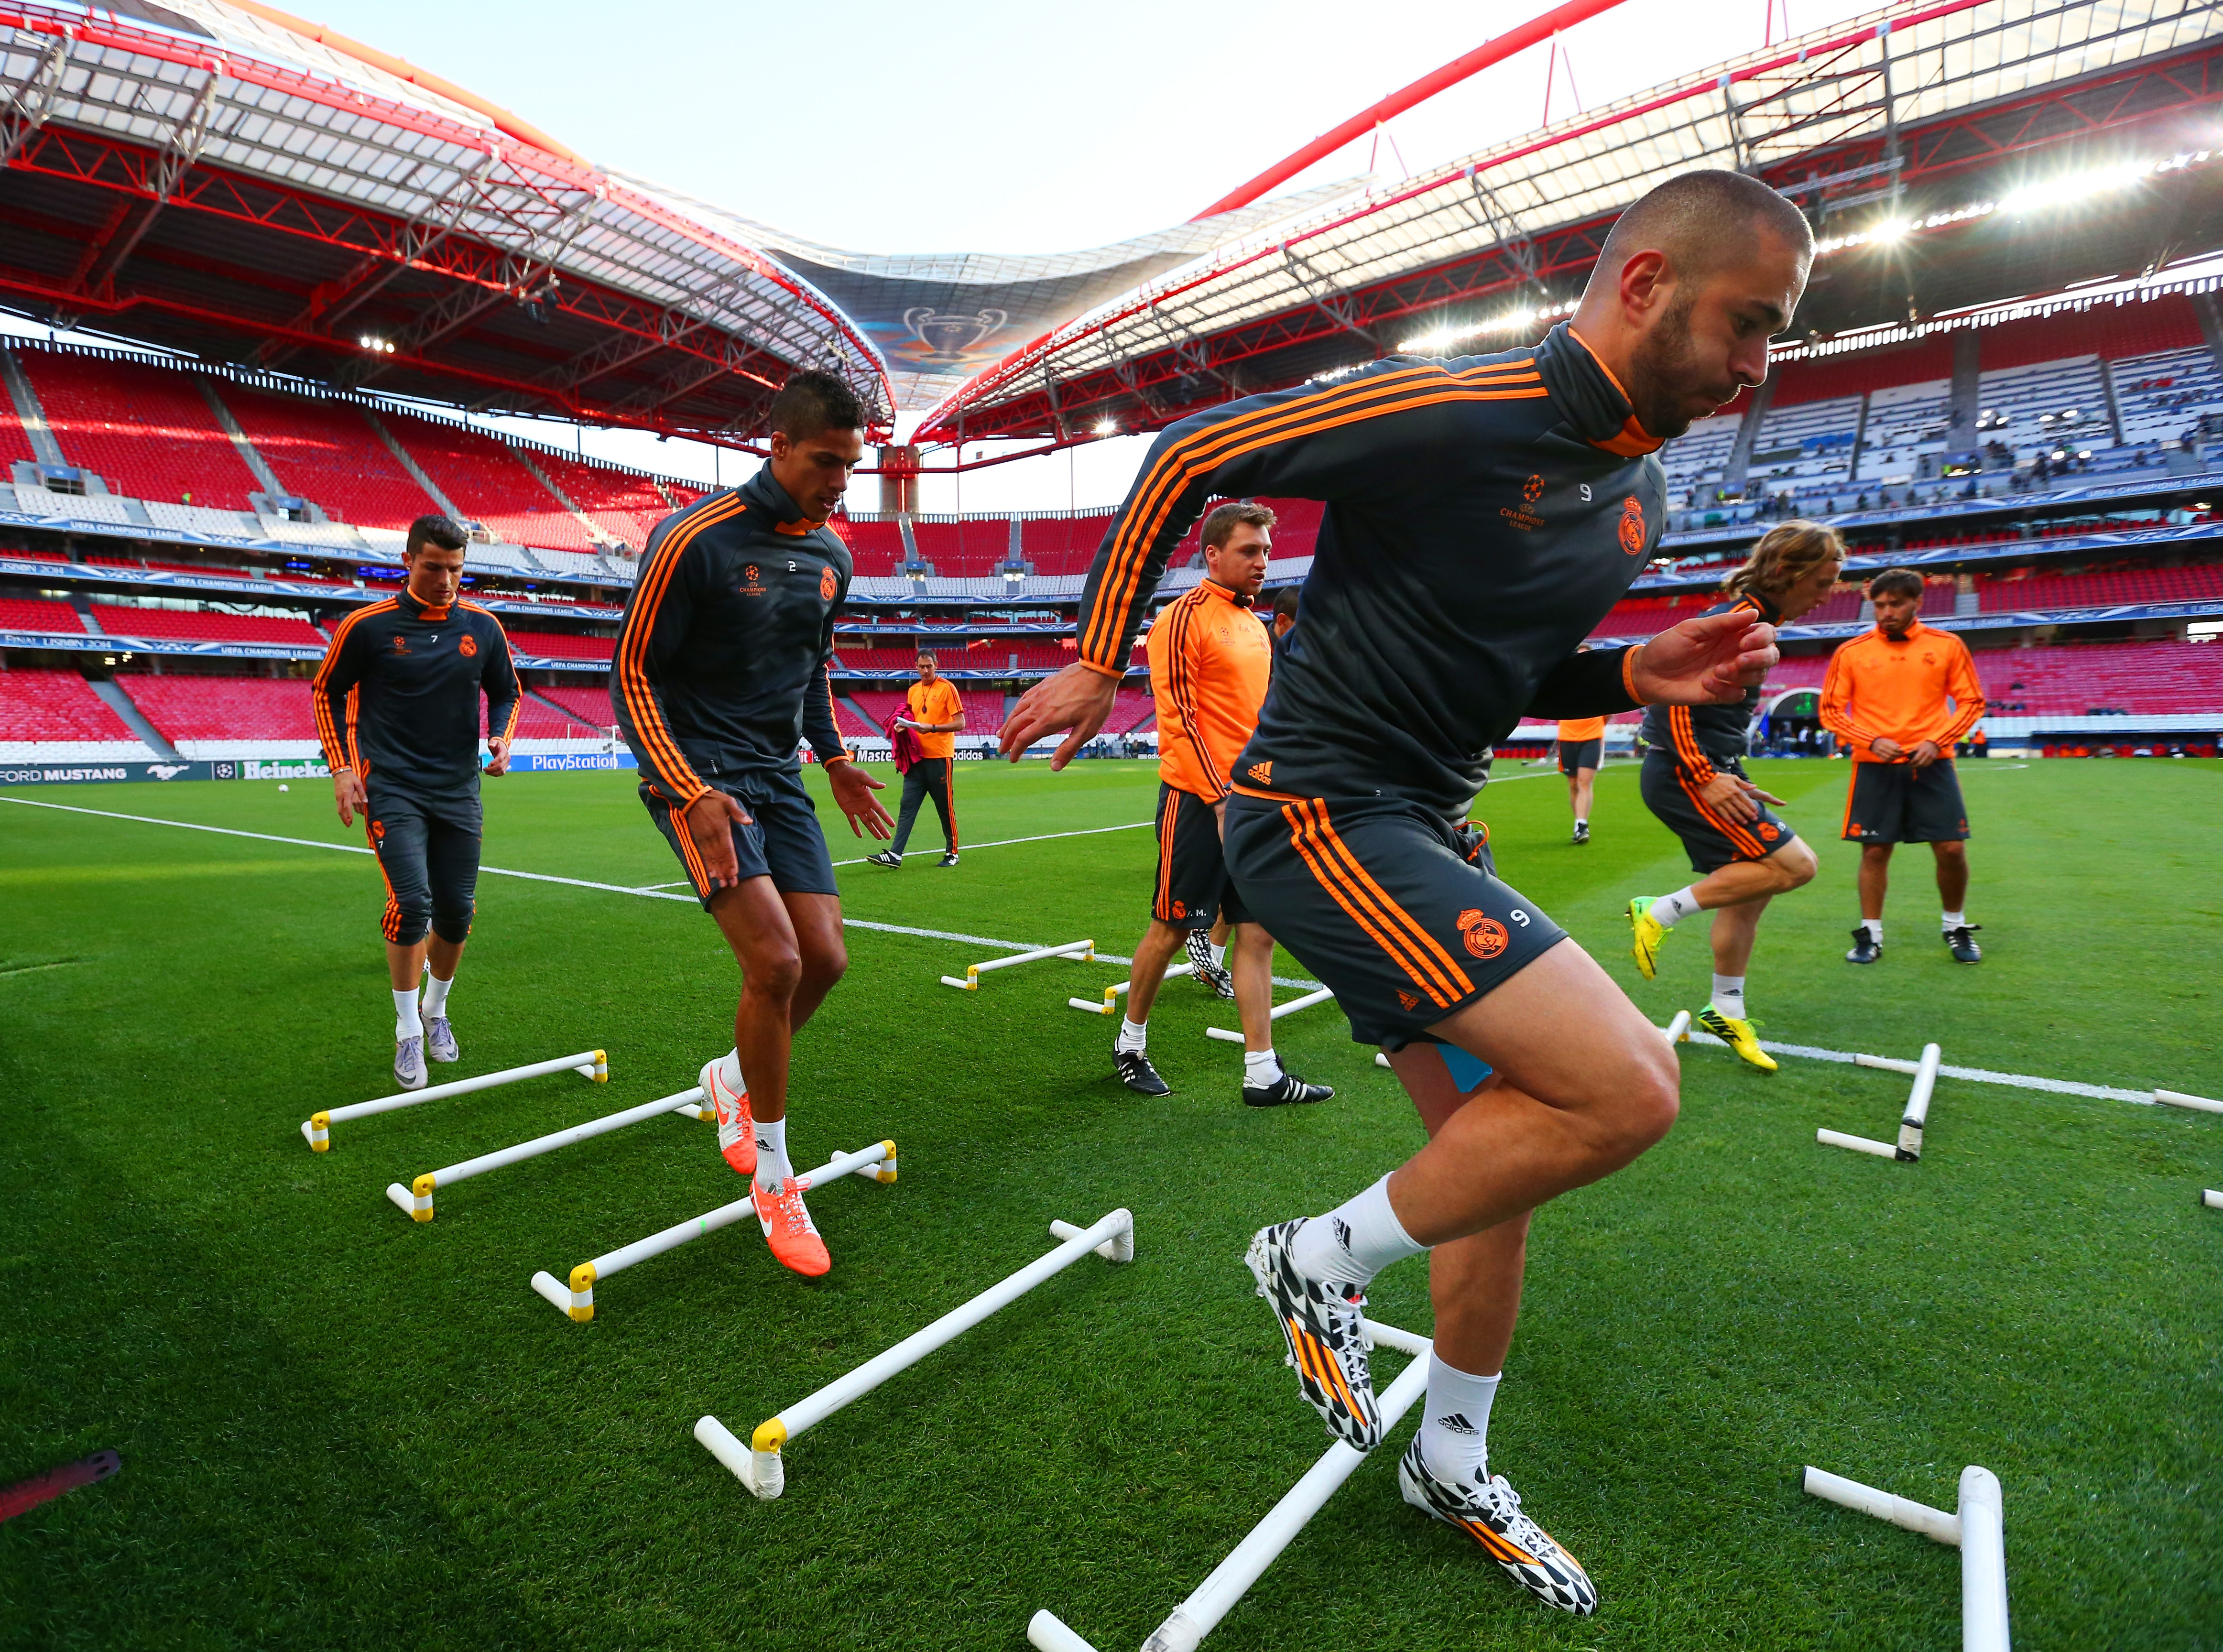 LISBON, PORTUGAL - MAY 23: Karim Benzema of Real Madrid (R) runs drills during a Real Madrid training session ahead of the UEFA Champions League Final against Club Atletico de Madrid at Estadio da Luz on May 23, 2014 in Lisbon, Portugal. (Photo by Alex Livesey/Getty Images)